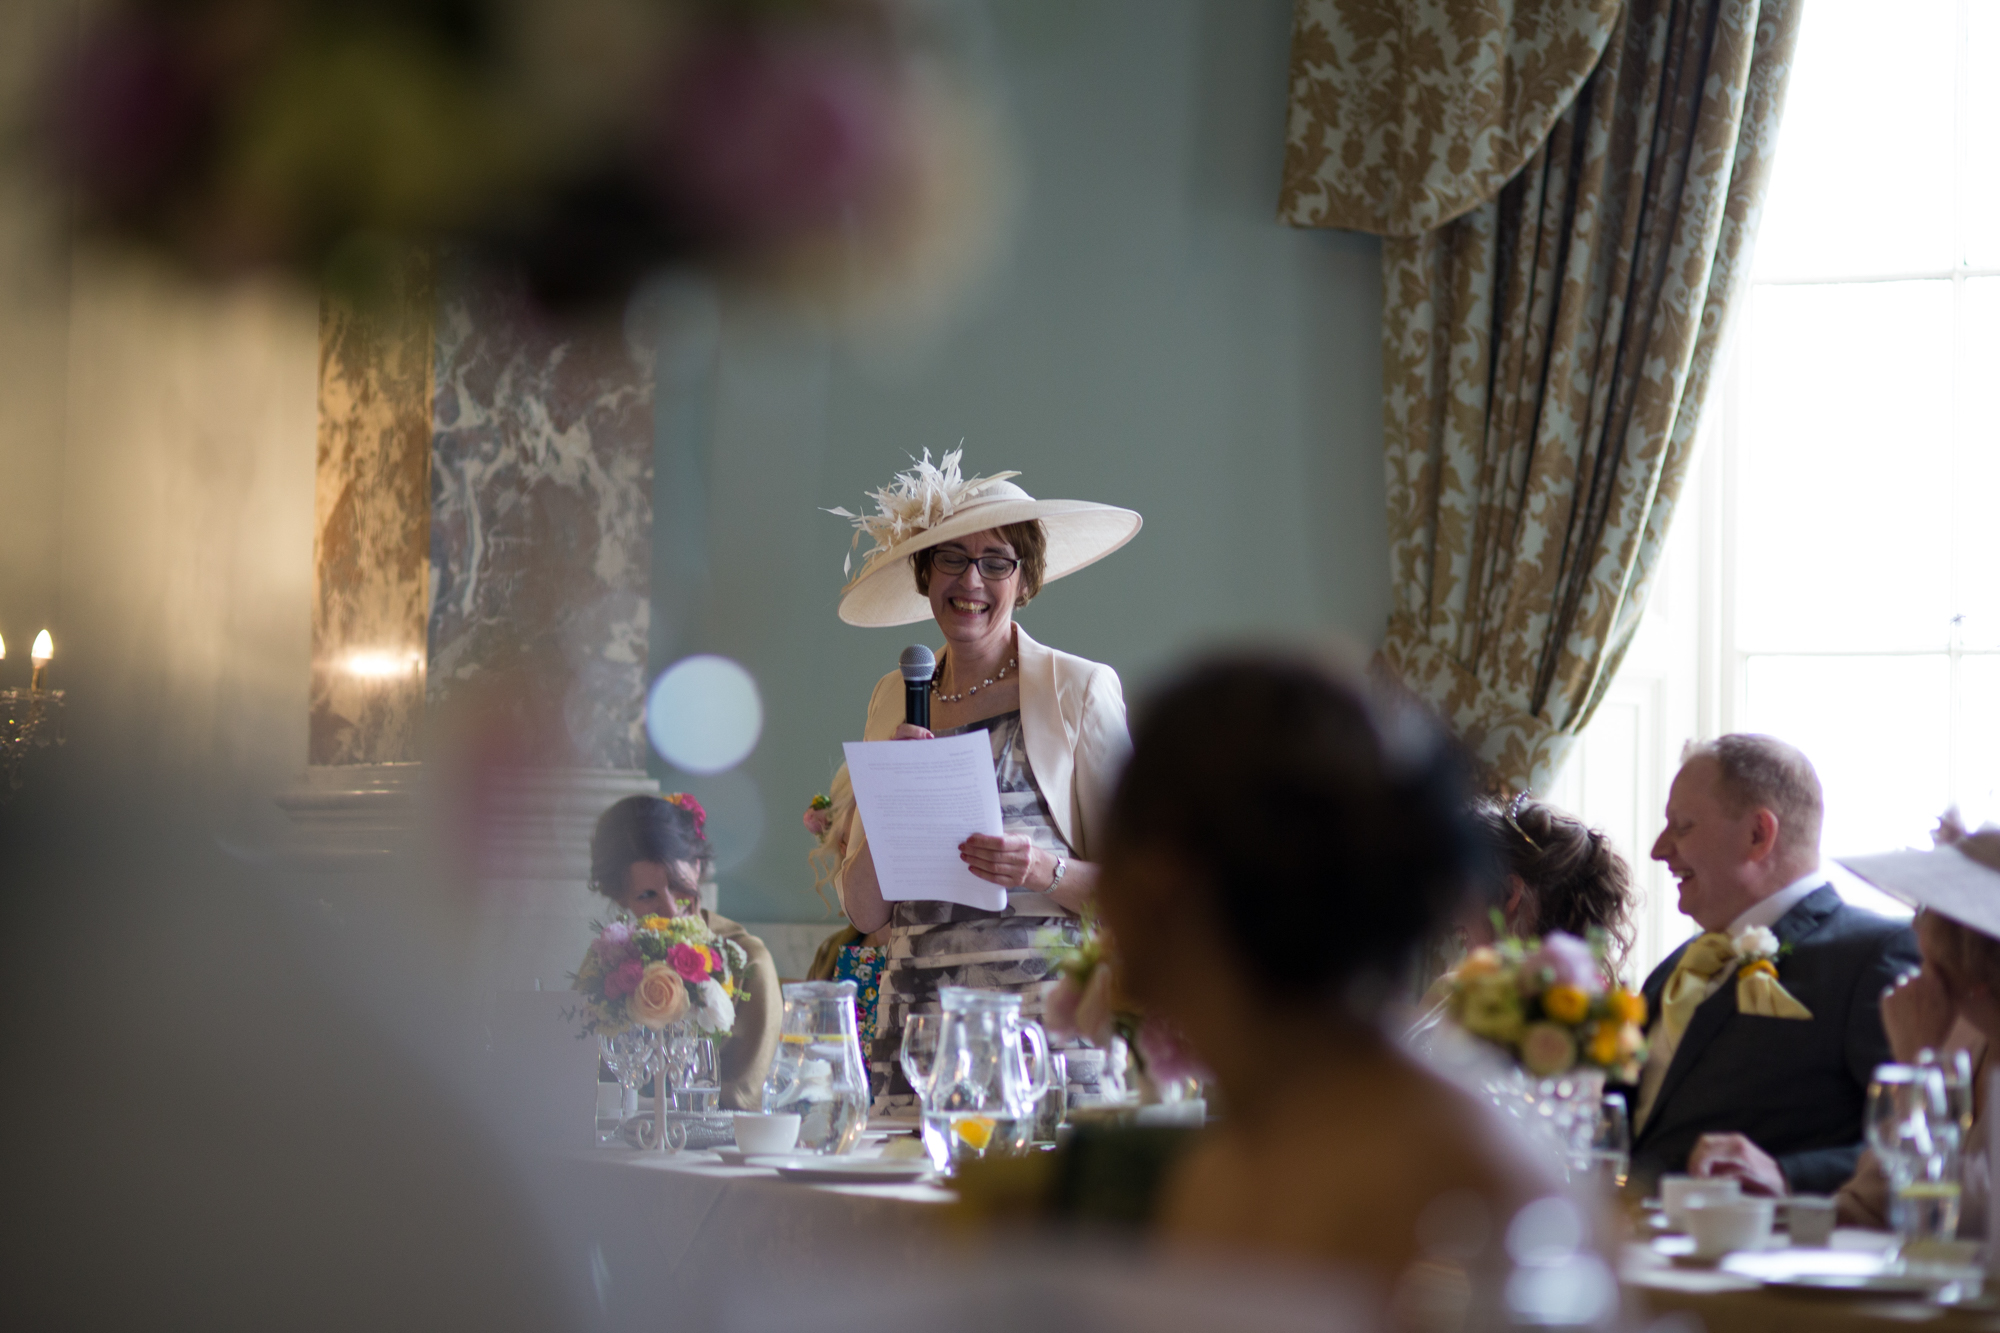 wynyard hall wedding photographer duncan mccall-1036.jpg